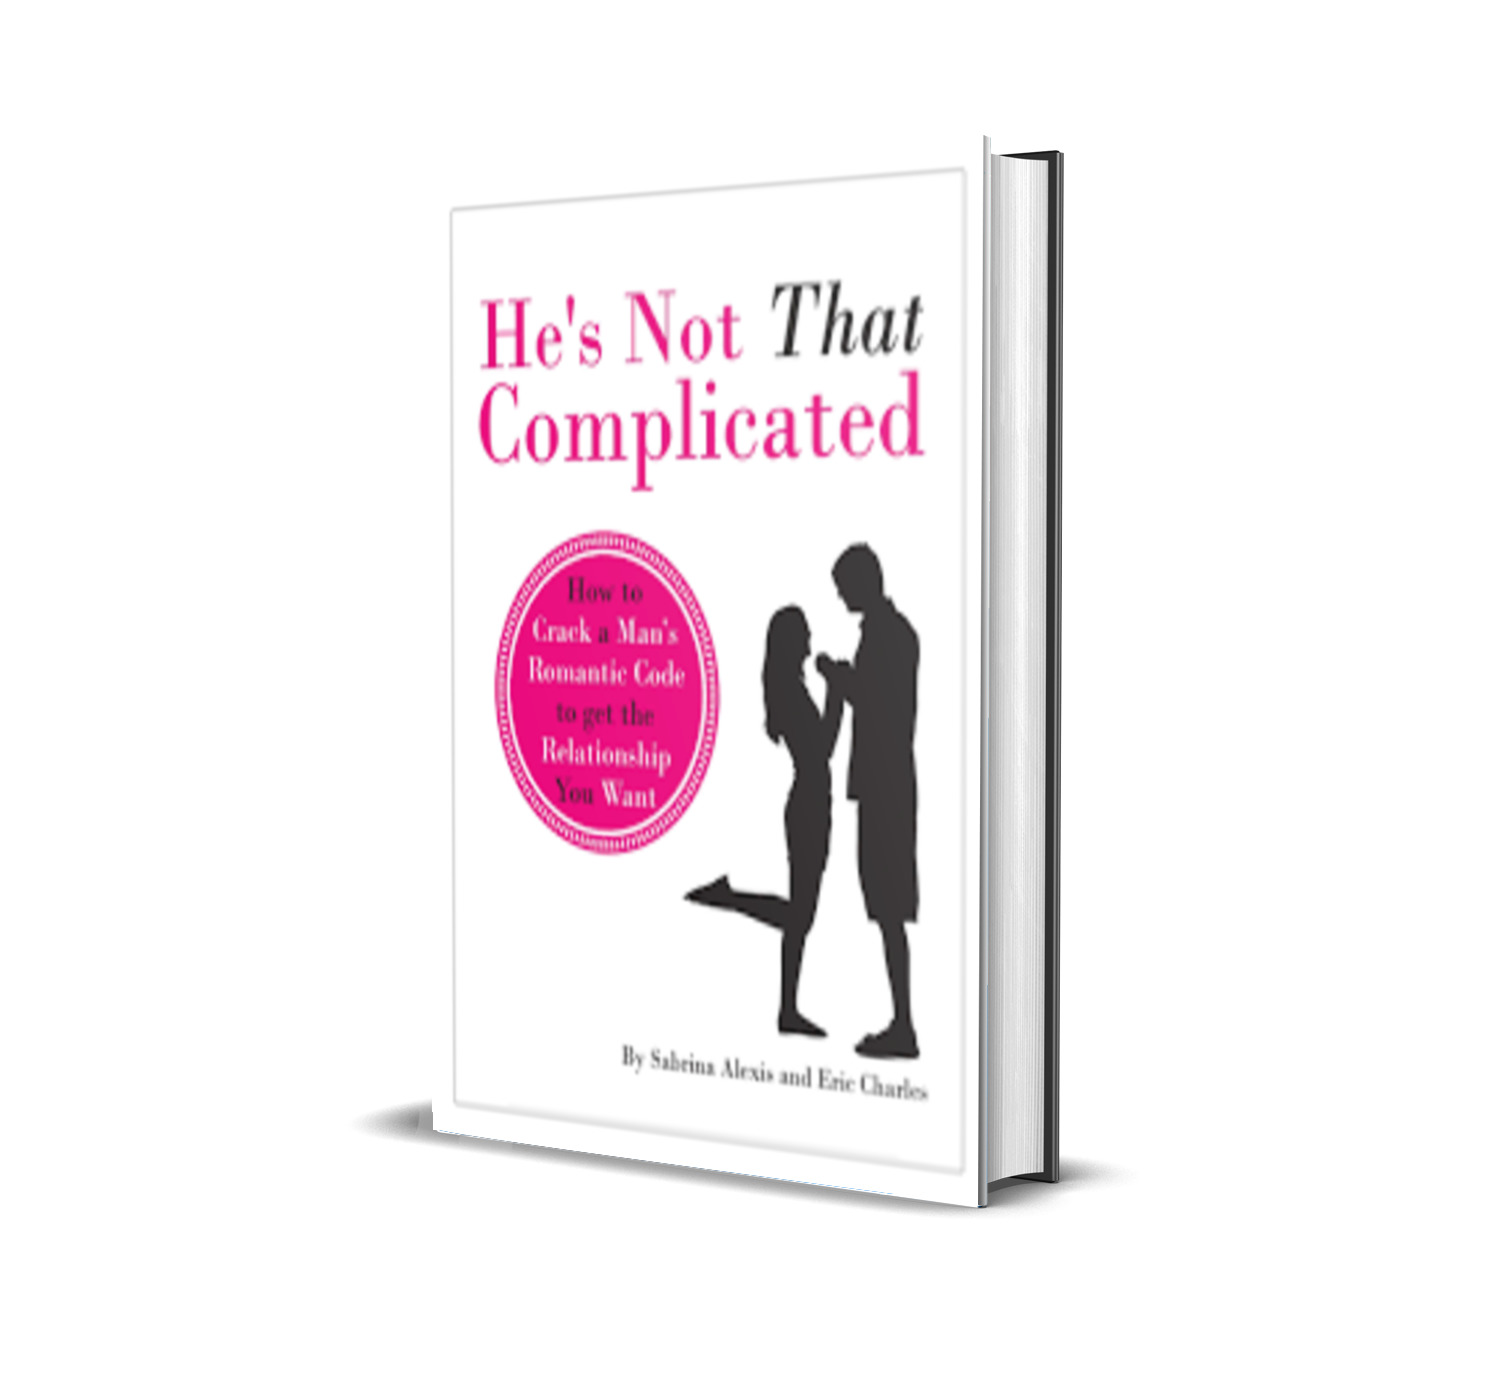 HE'S NOT THAT COMPLICATED - Sabrina Alexis